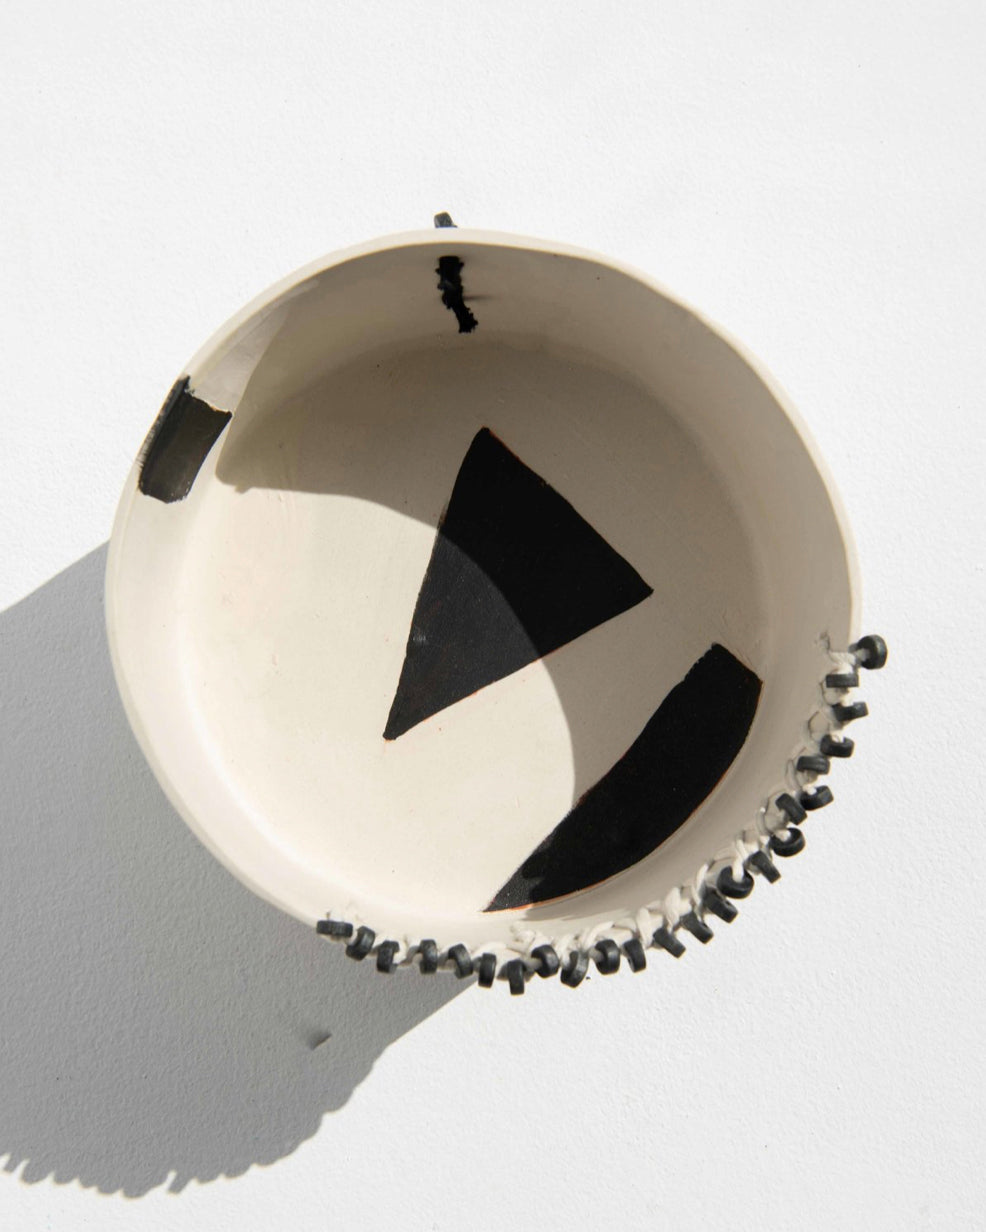 Handmade ceramic bowl with beads and fabric black and white